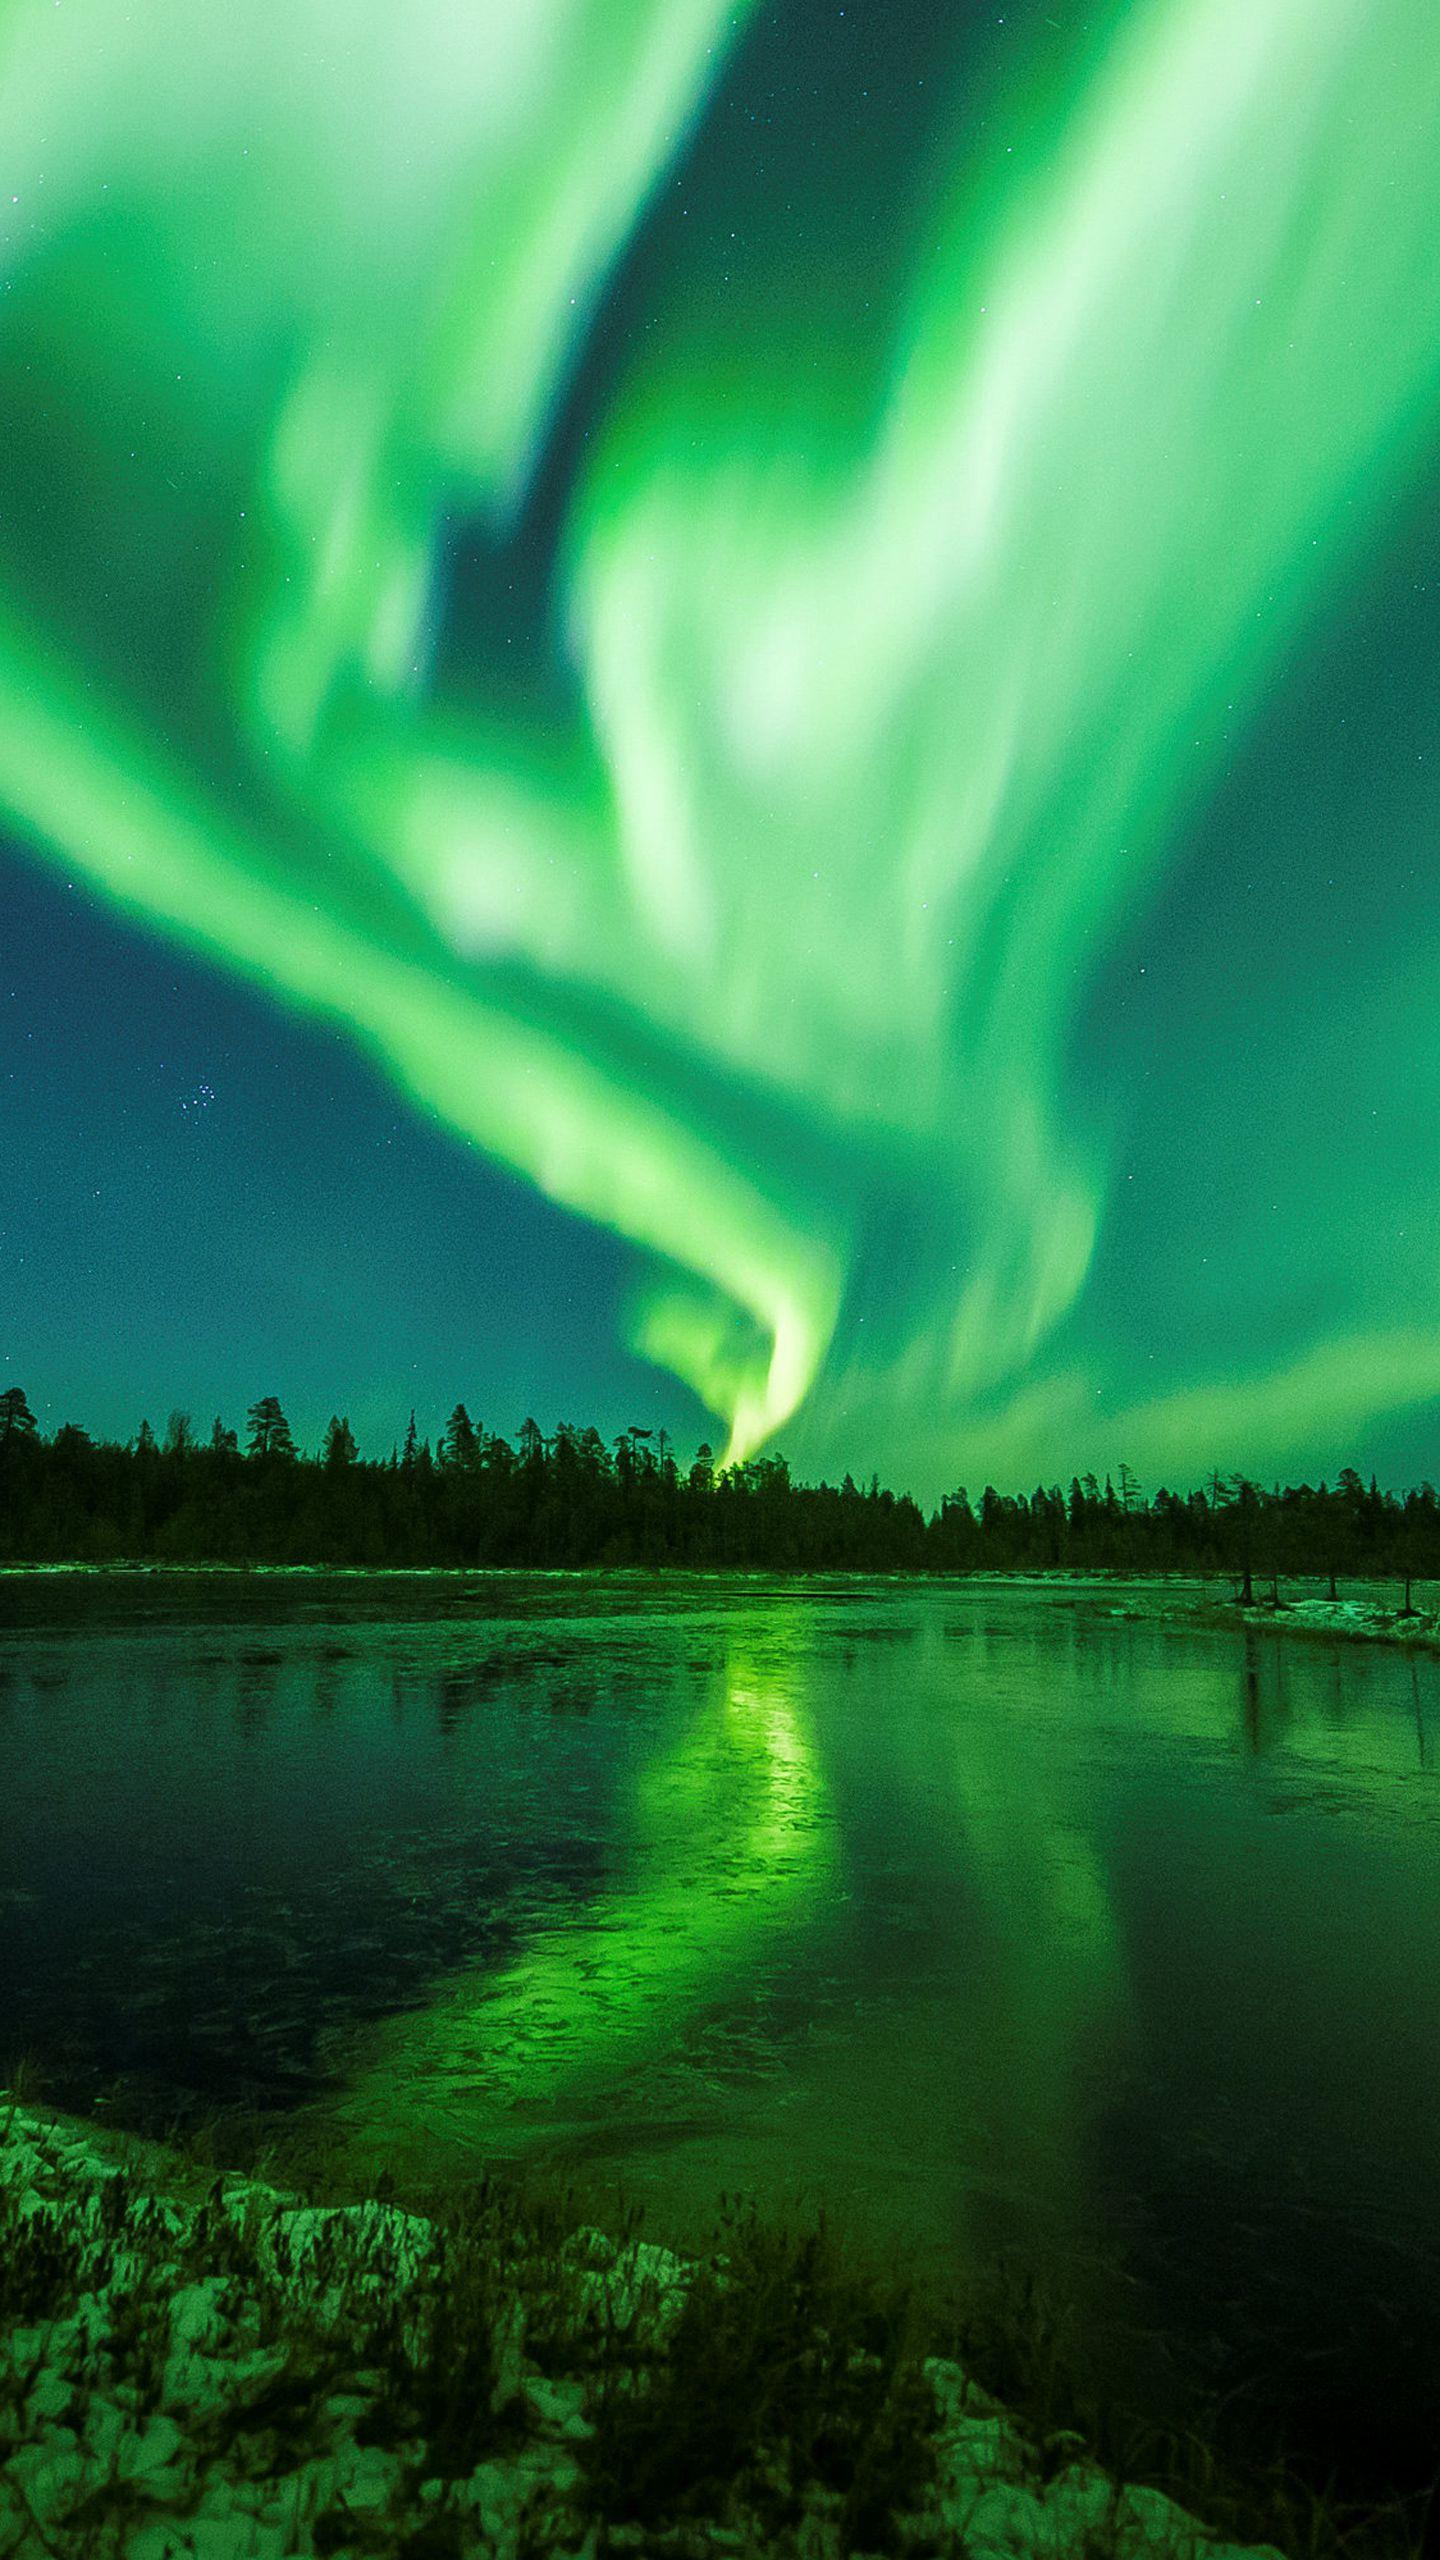 The power of nature. On October 7, 2018, local time, Aurora appeared in Lapland, Finland. ©Engraving Media